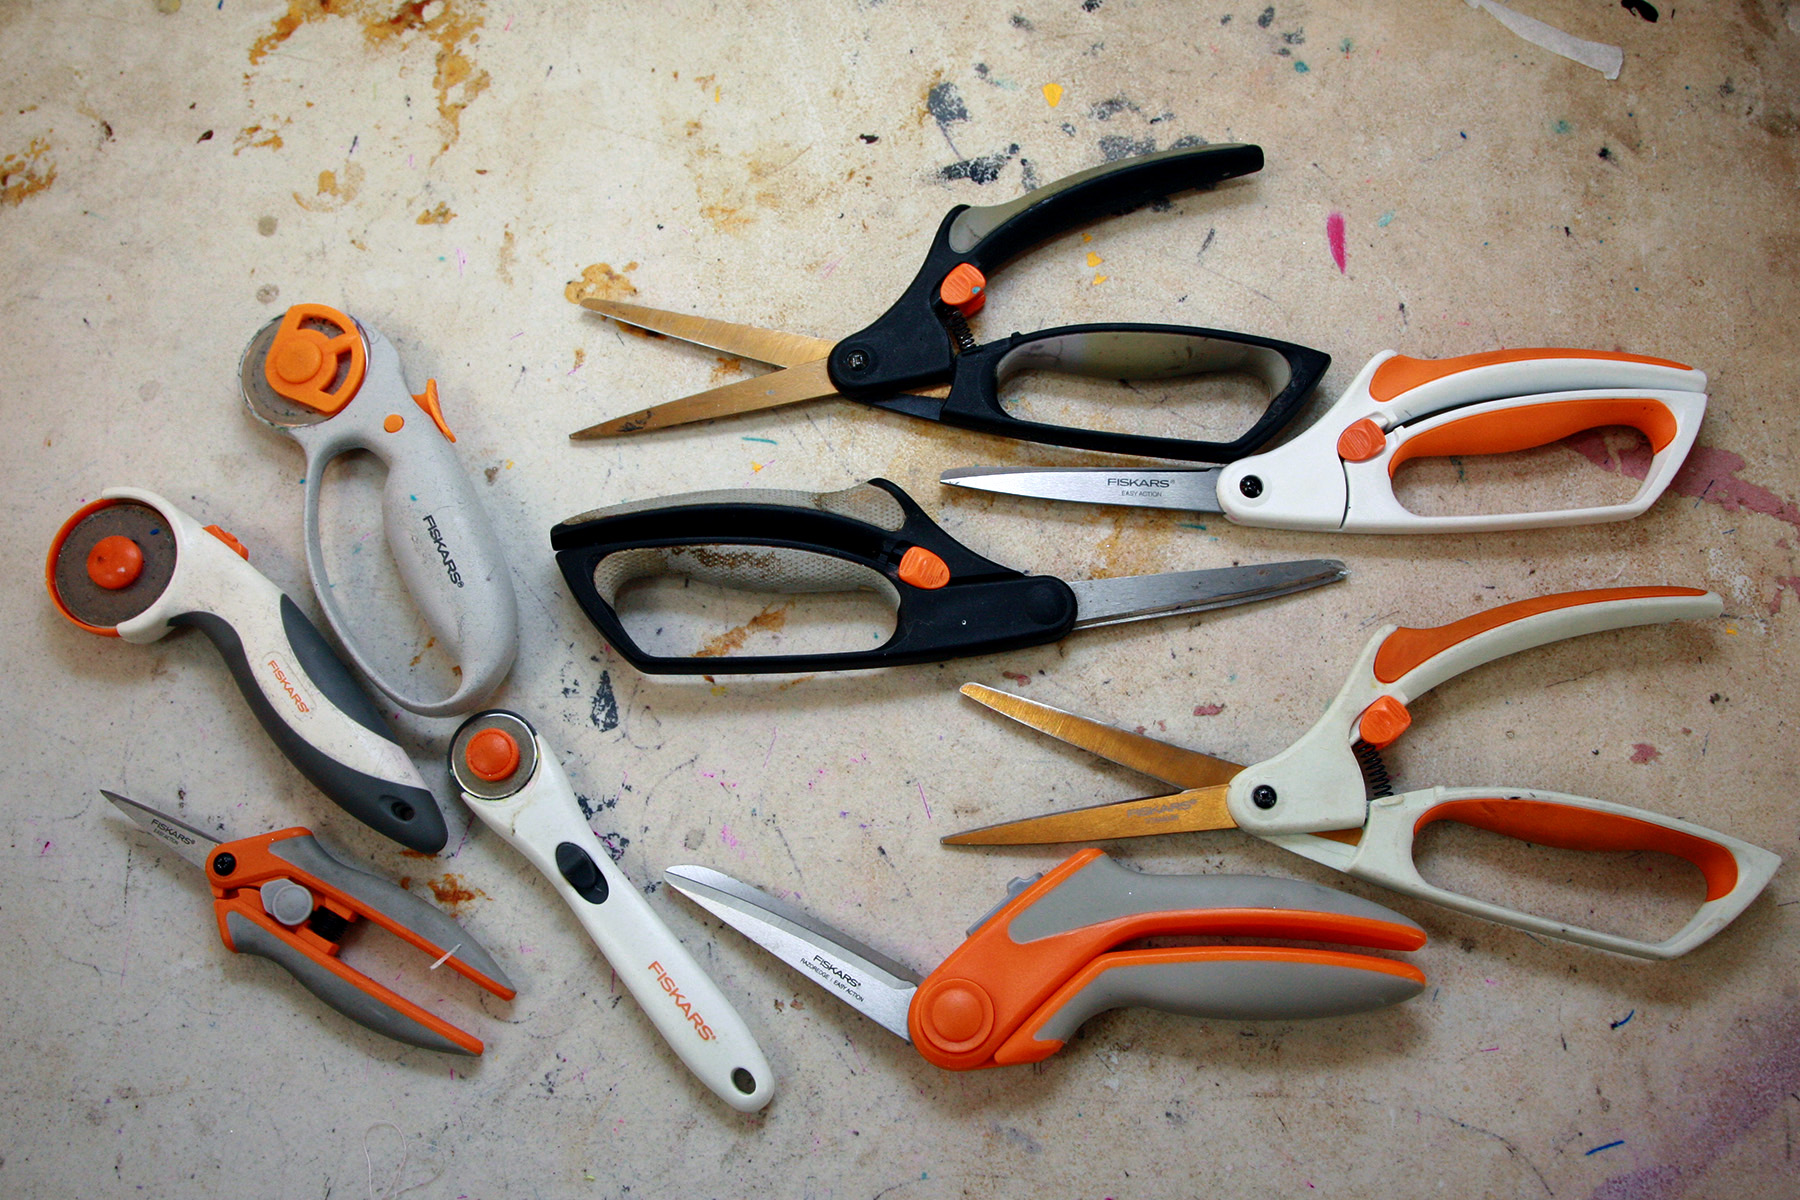 A section of Fiskar scissors - all orange, white, and black - are shown on a work table.